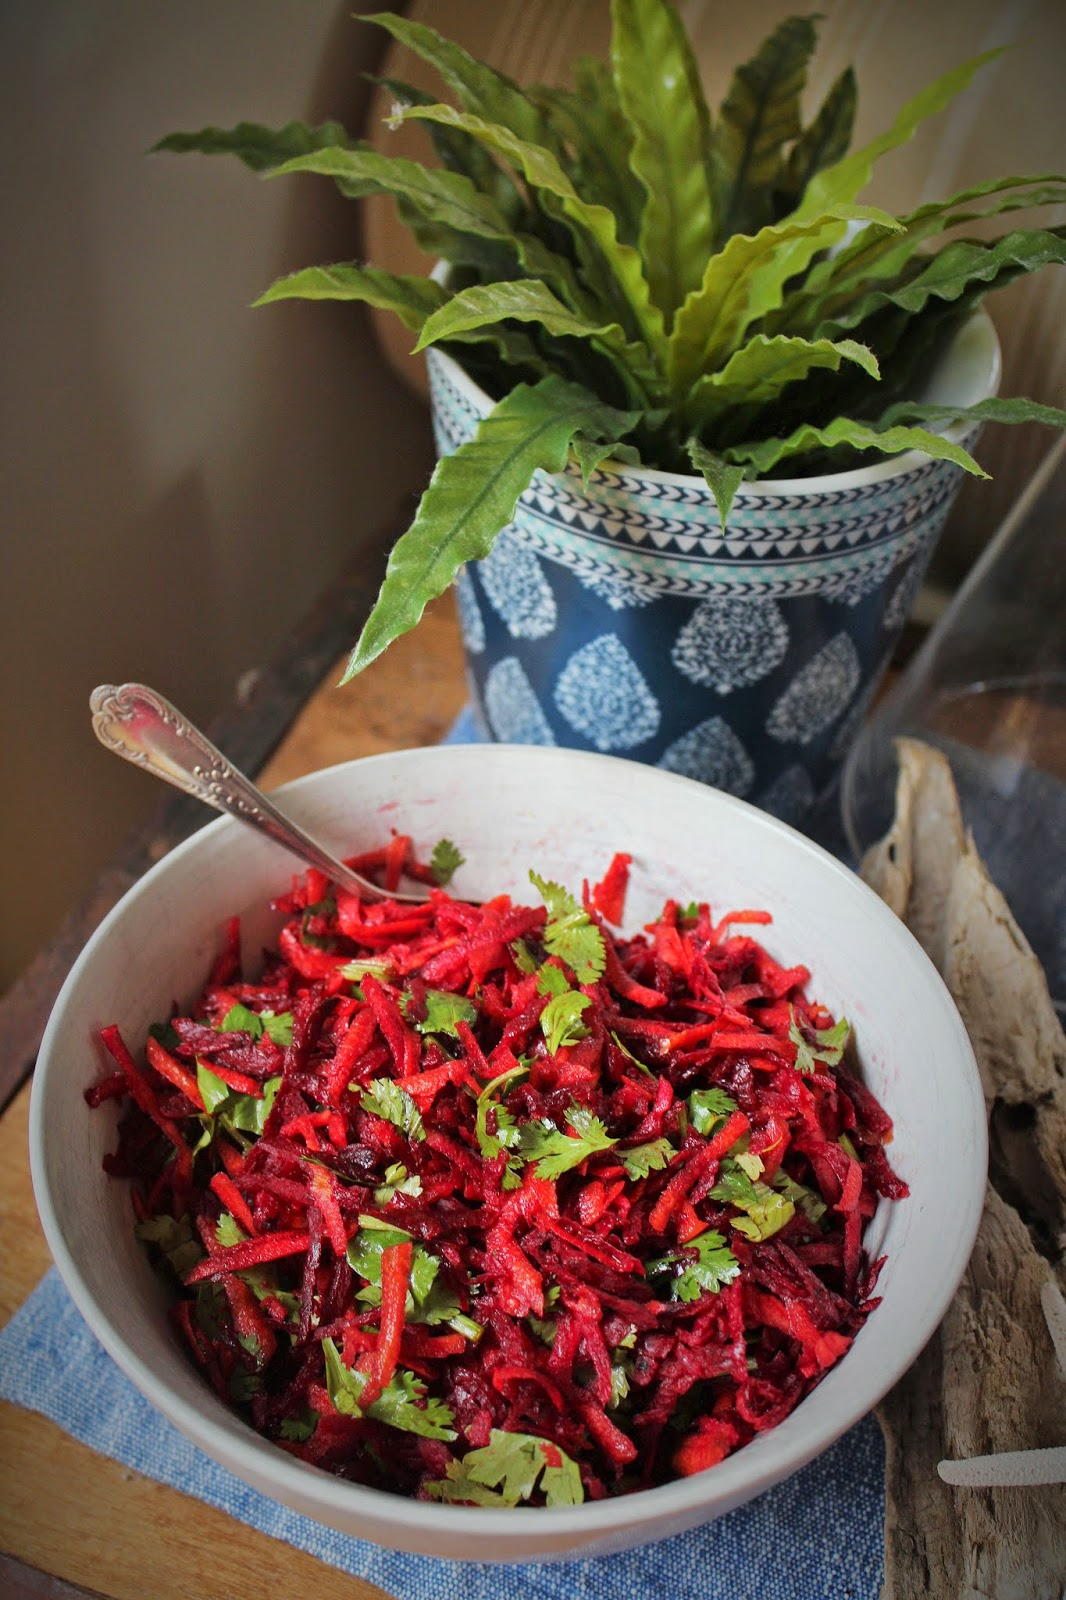 Coastal styling and craft ideas desire empire - Raw Beetroot Carrot Apple And Coriander Salad